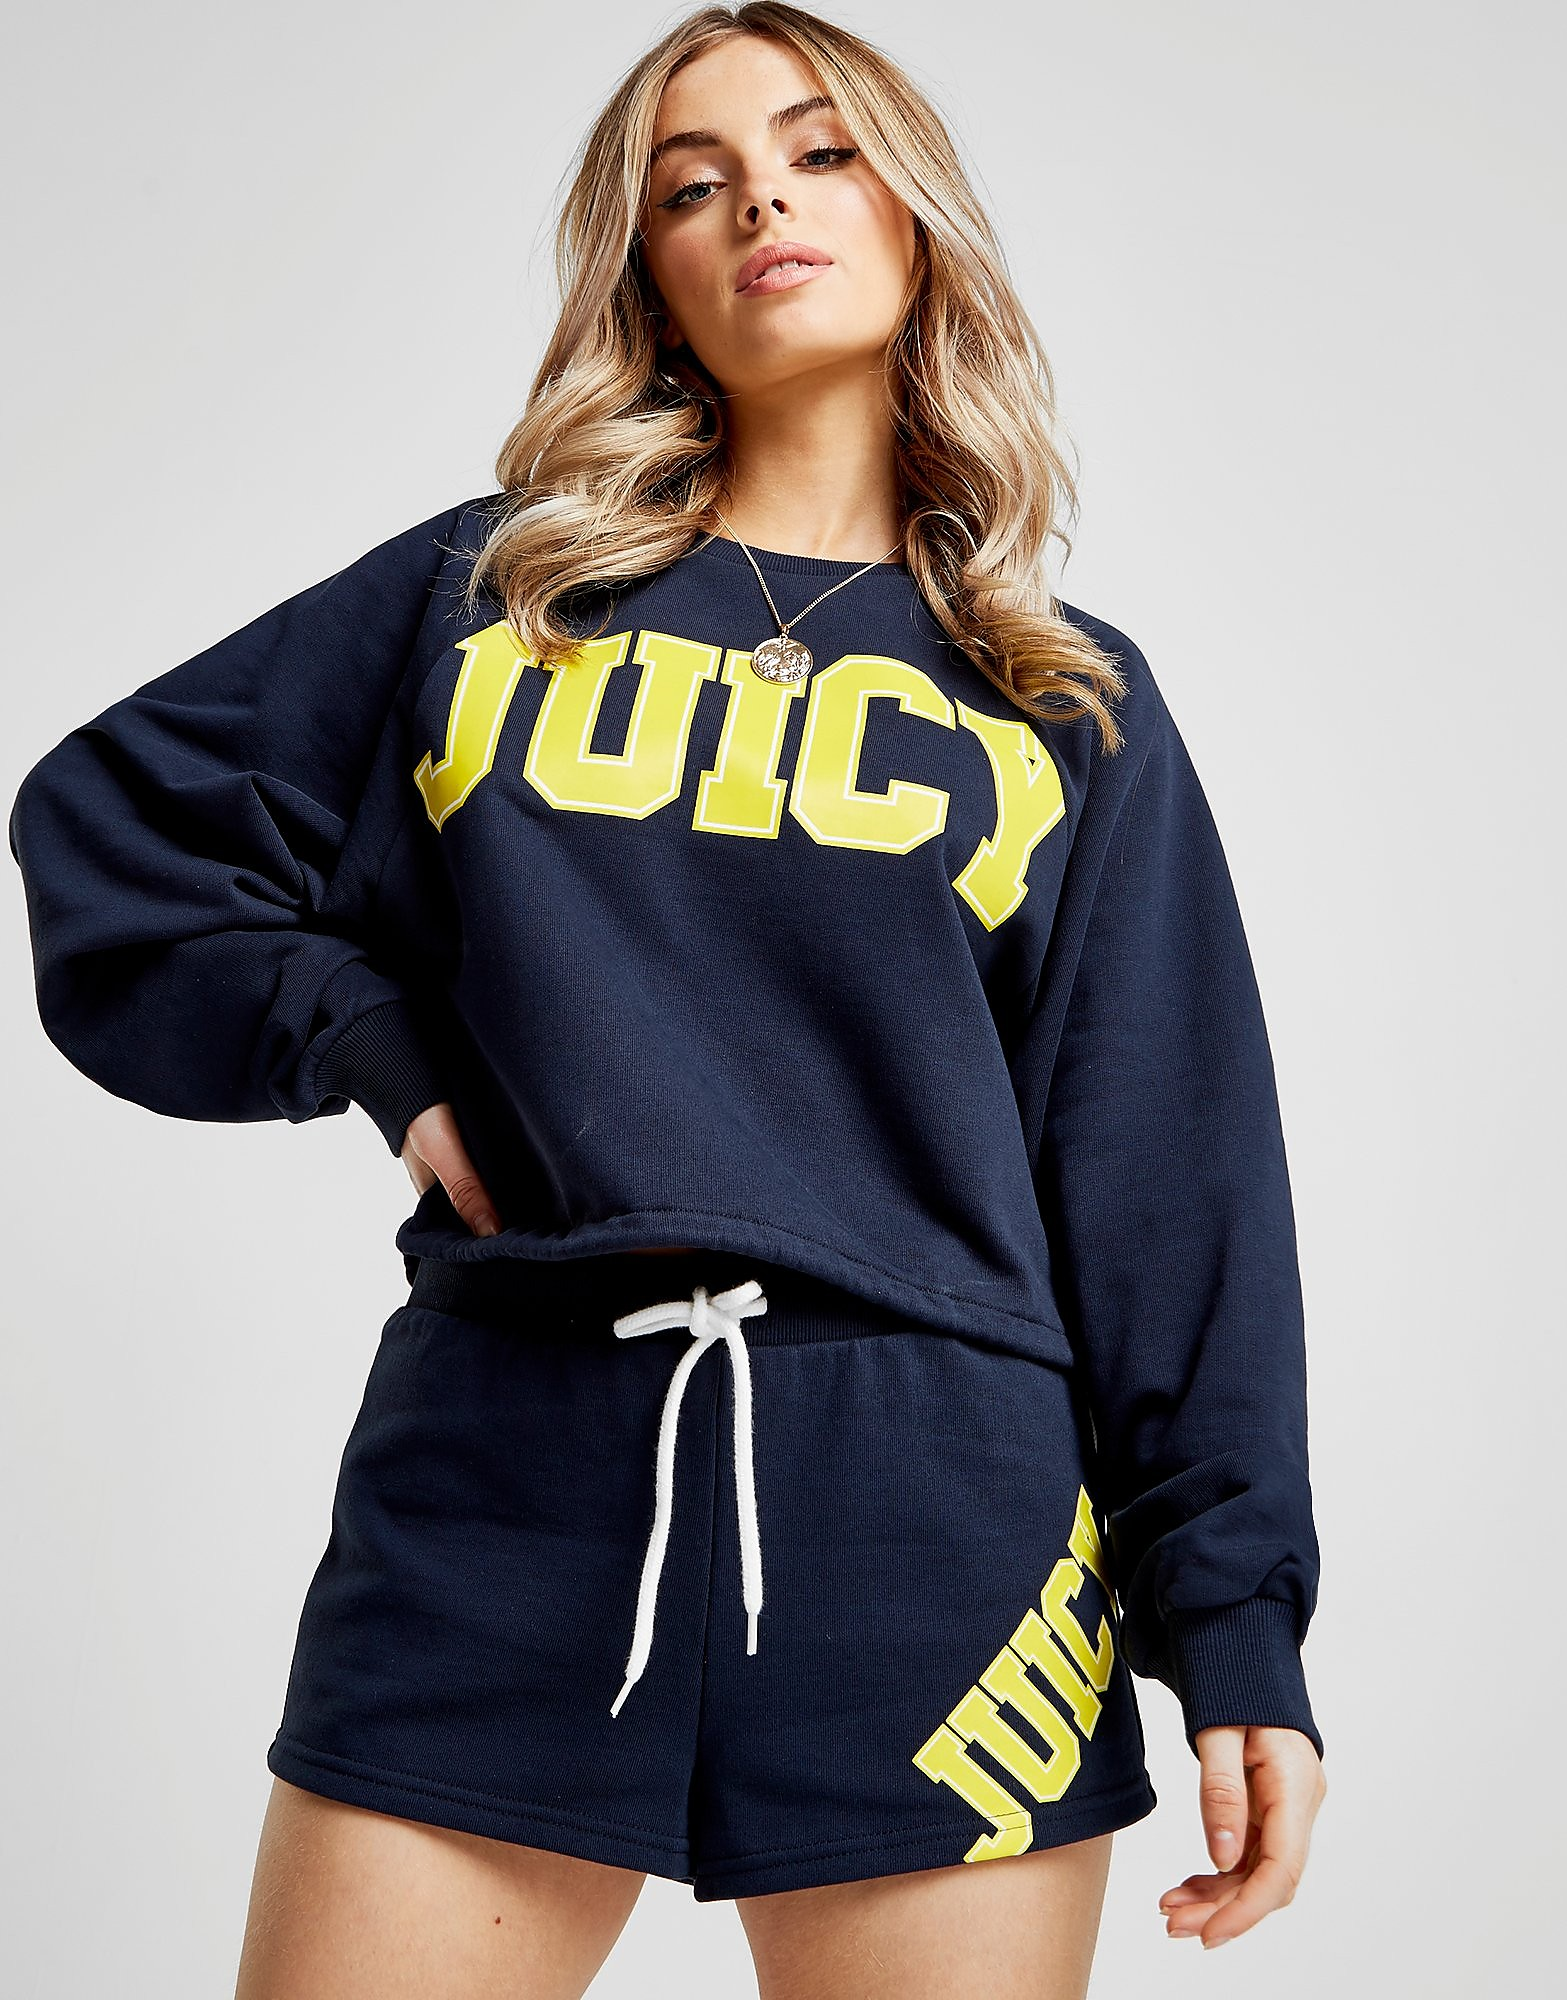 Juicy by Juicy Couture Logo Tie Crew Sweatshirt